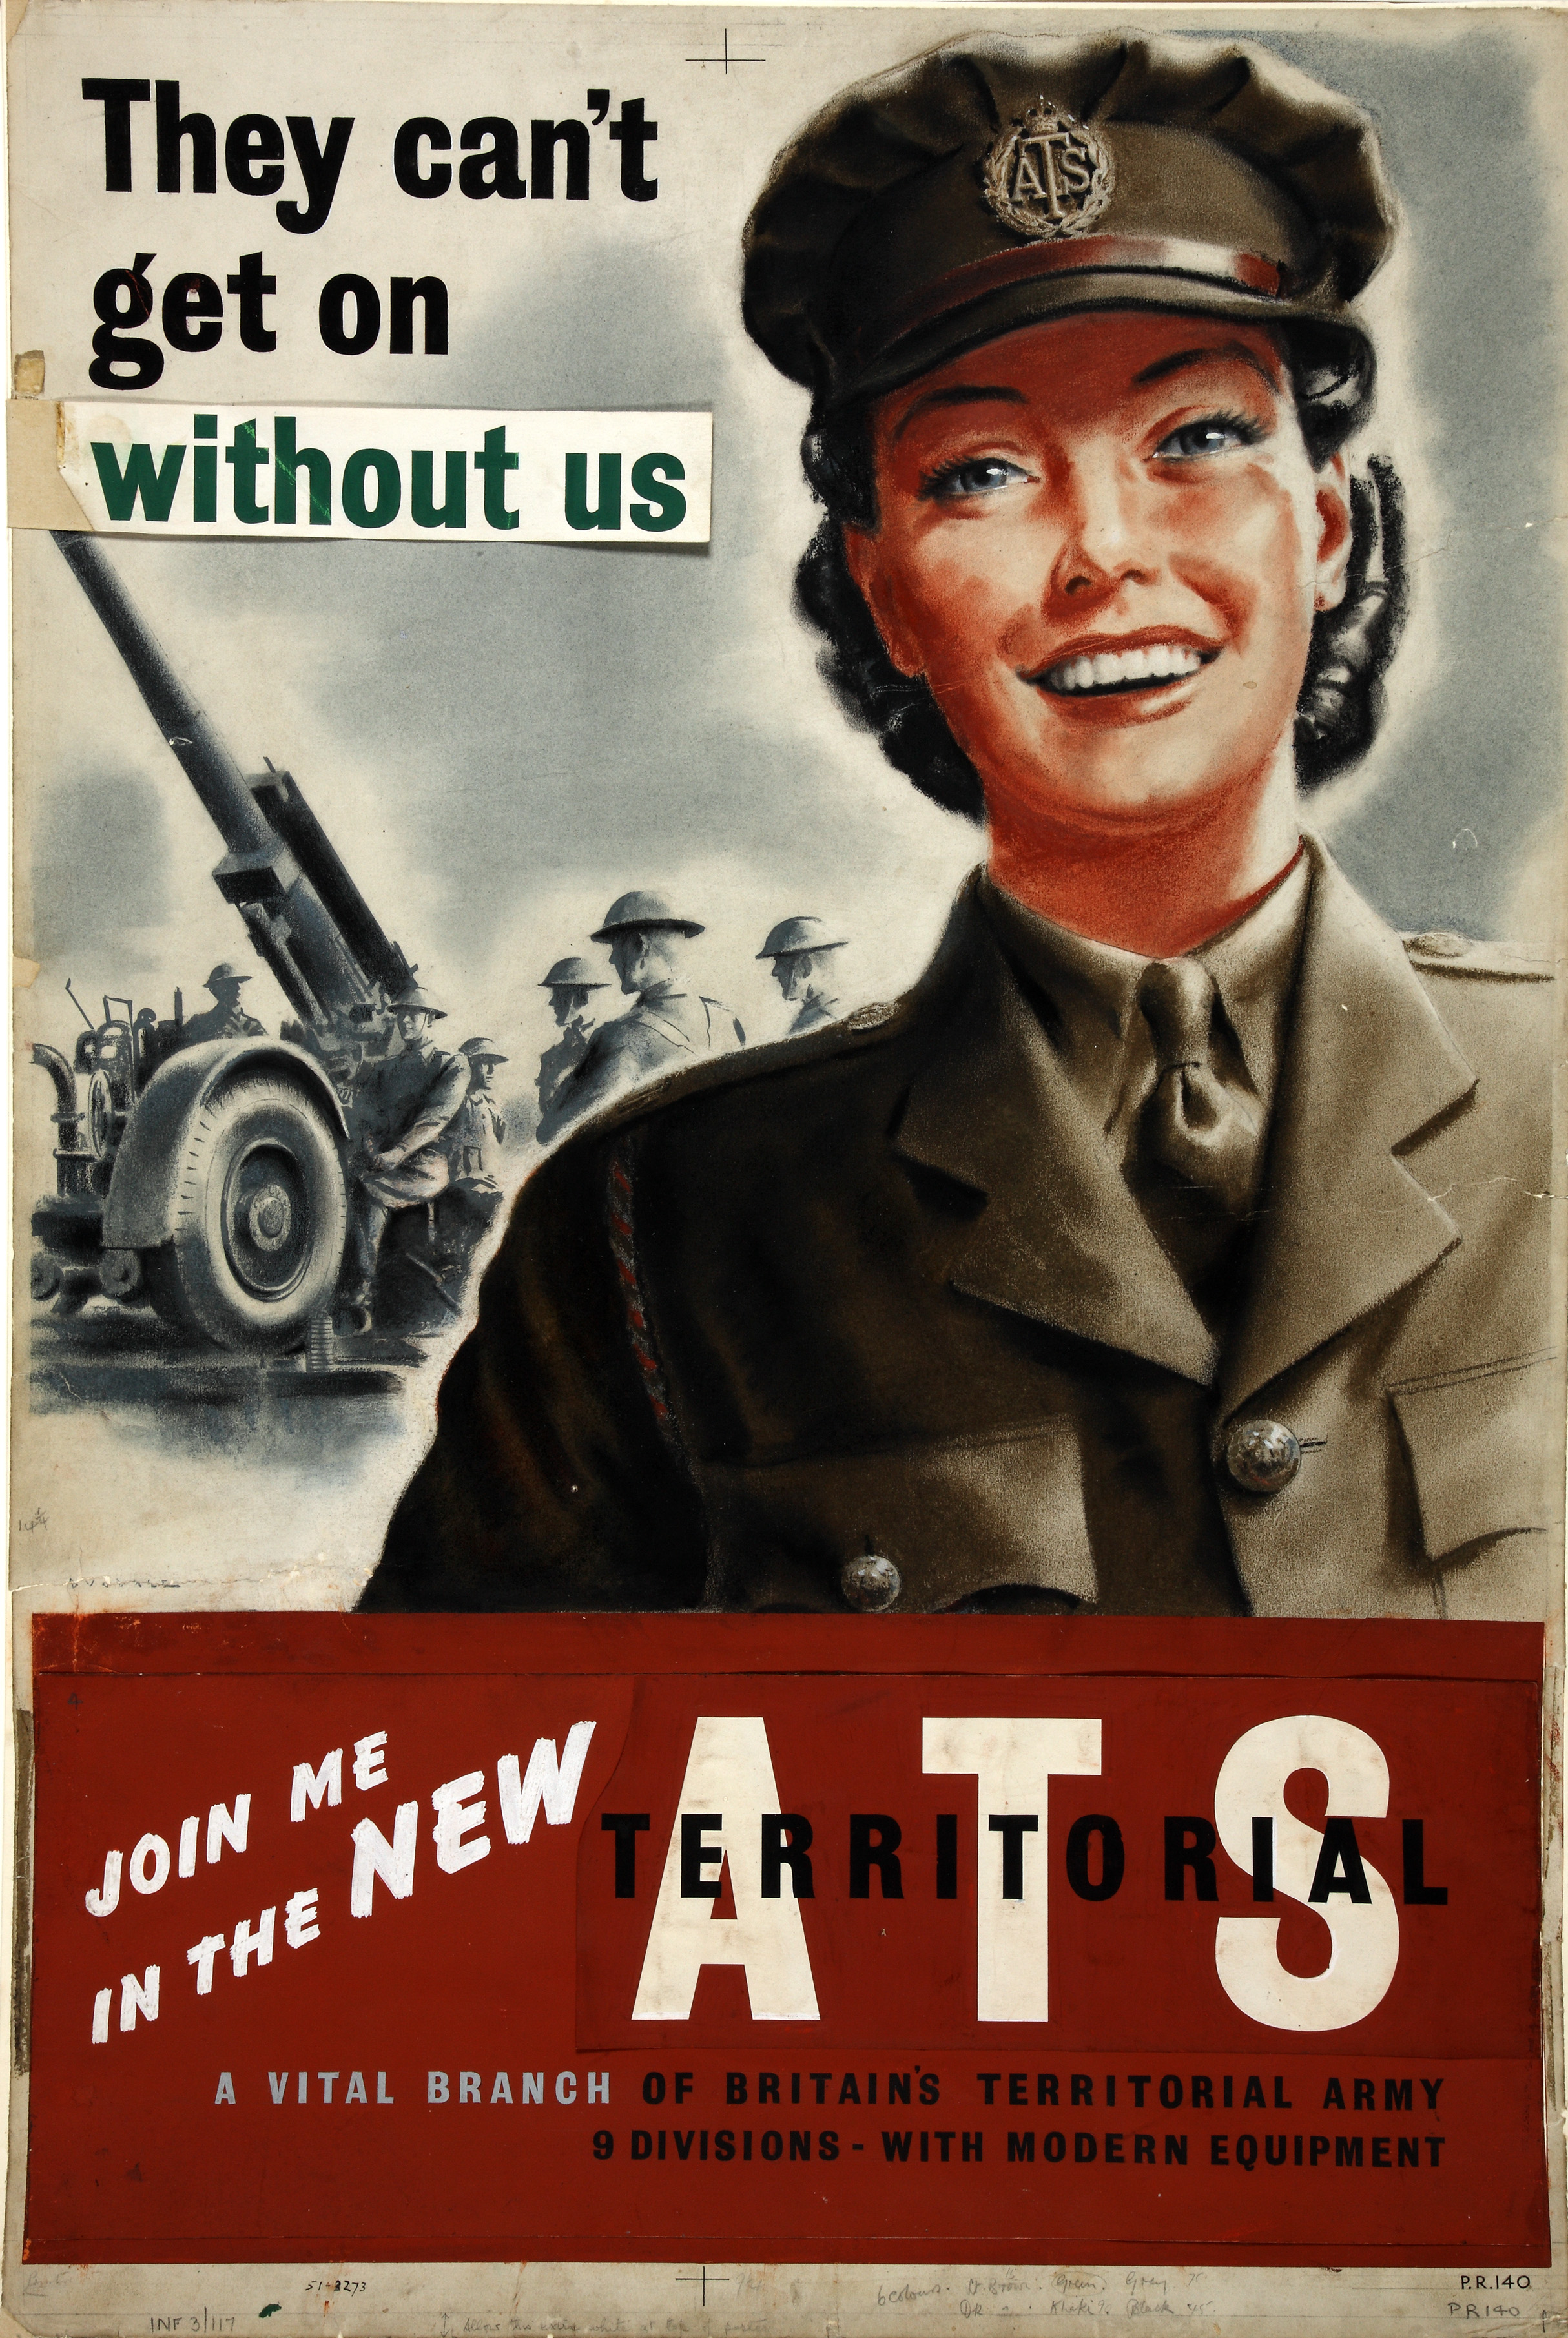 INF3-117_Forces_Recruitment_ATS_They_can